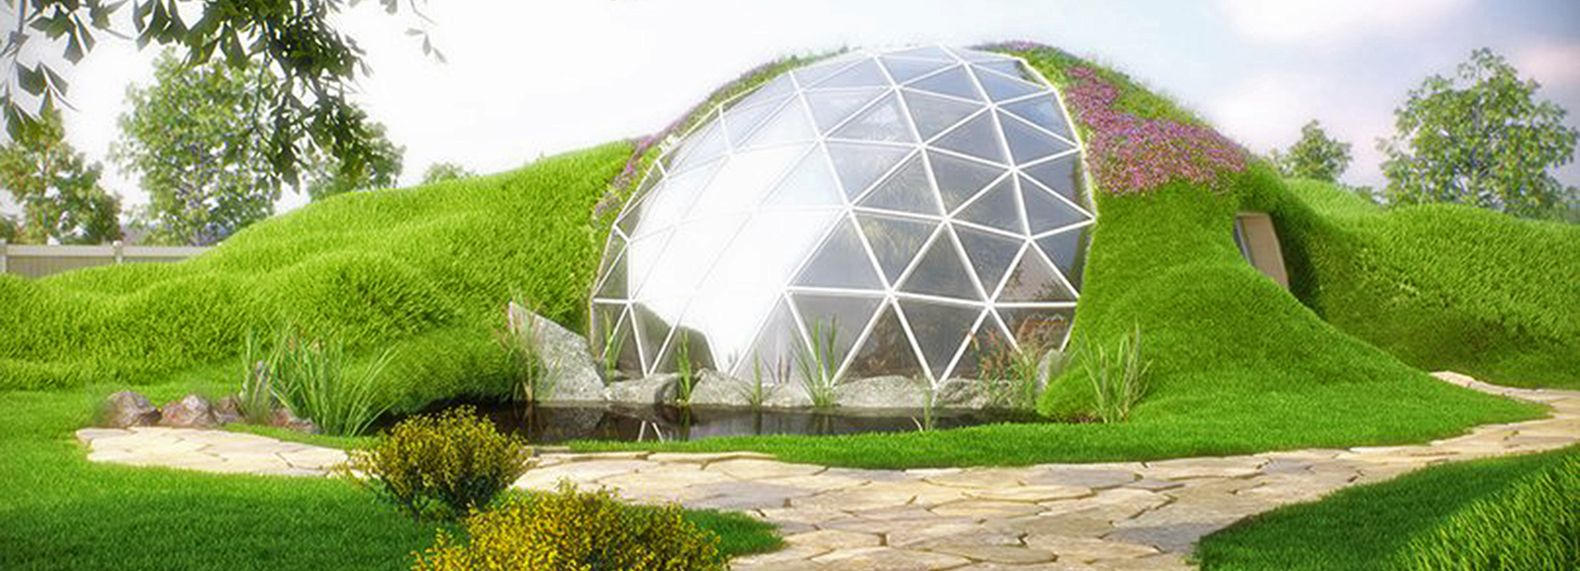 GEODESIC BIODOME HOUSE